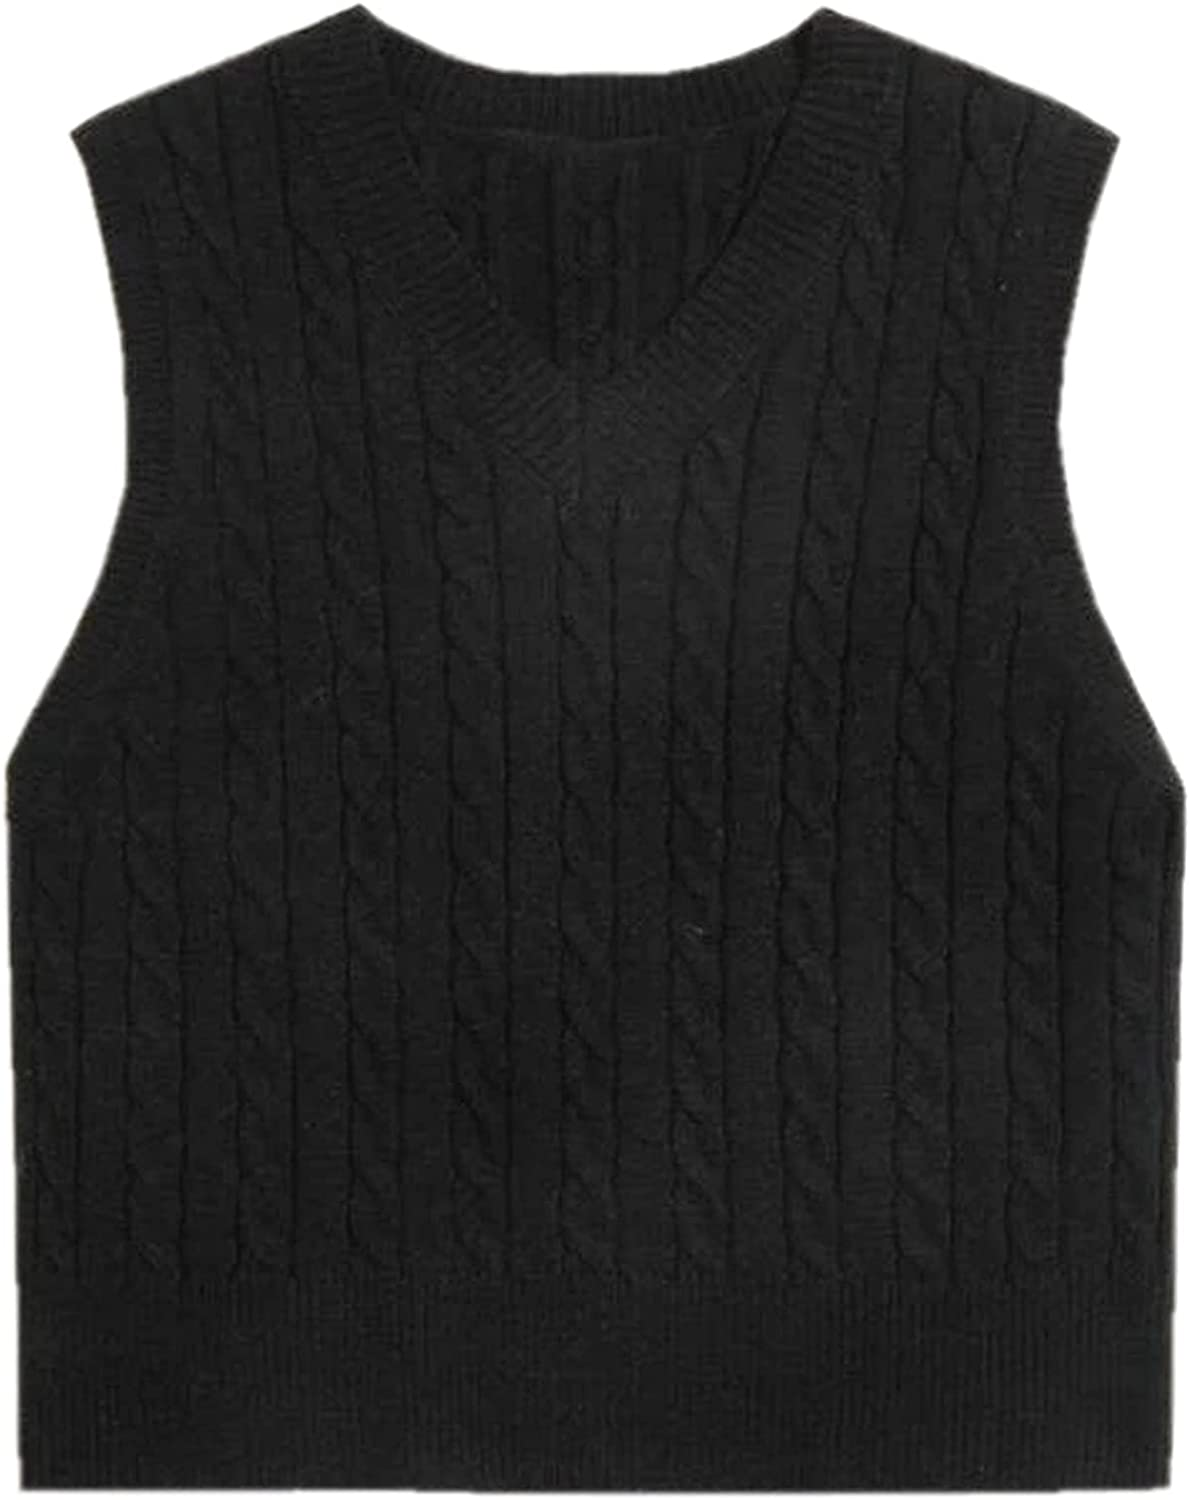 Betusline Women's Cable Knit Sleeveless Crop Sweater Vests